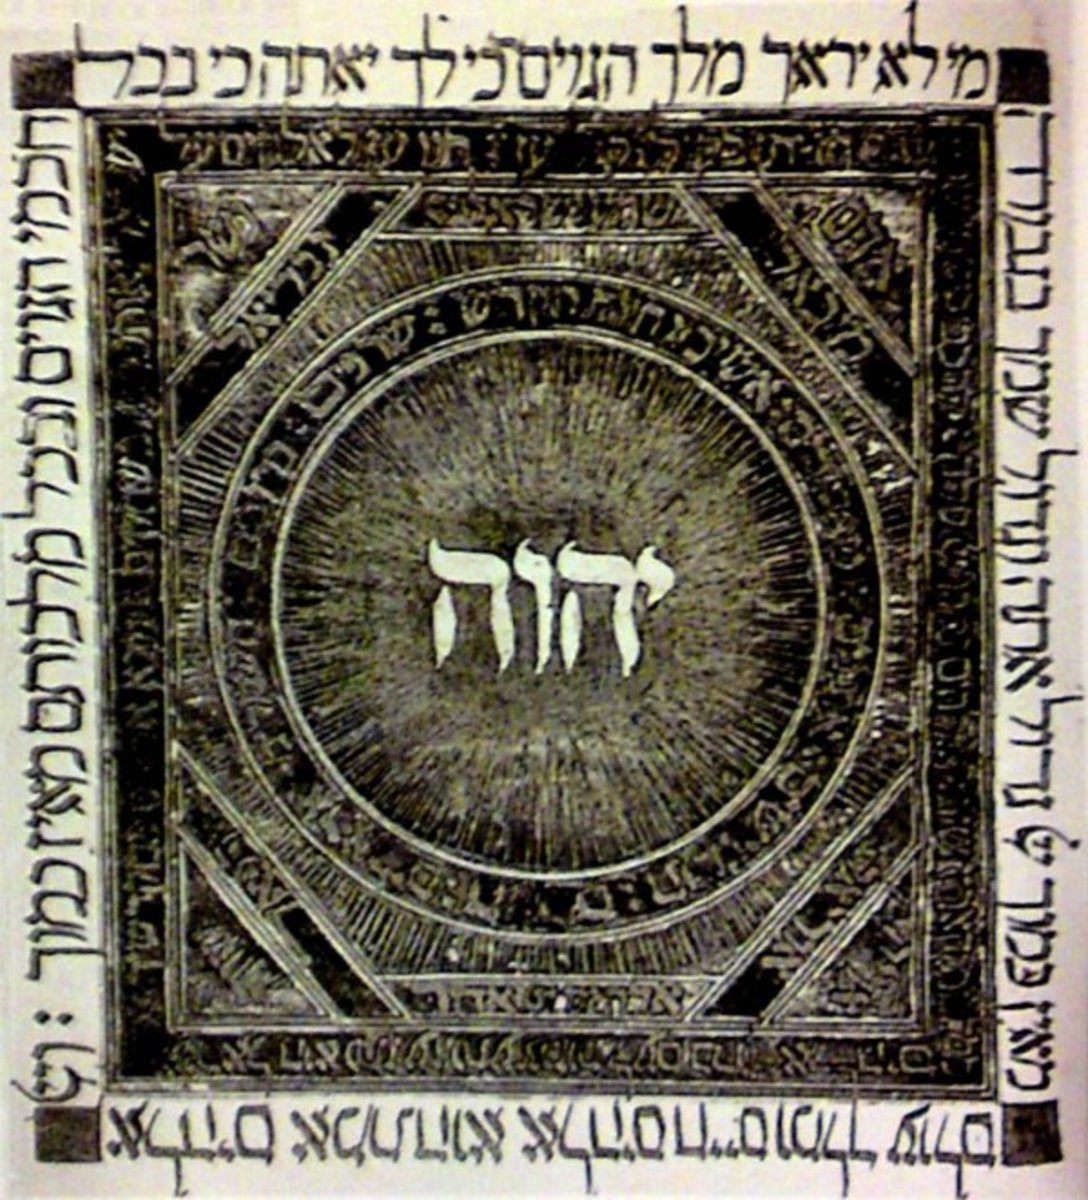 The above image is the Hebrew word YHVH Most frequently pronounced Yahweh and translated LORD in most English Bibles. The Jury is still out on its exact pronunciation. It is also known as the Tetragrammaton in description of its four letters.